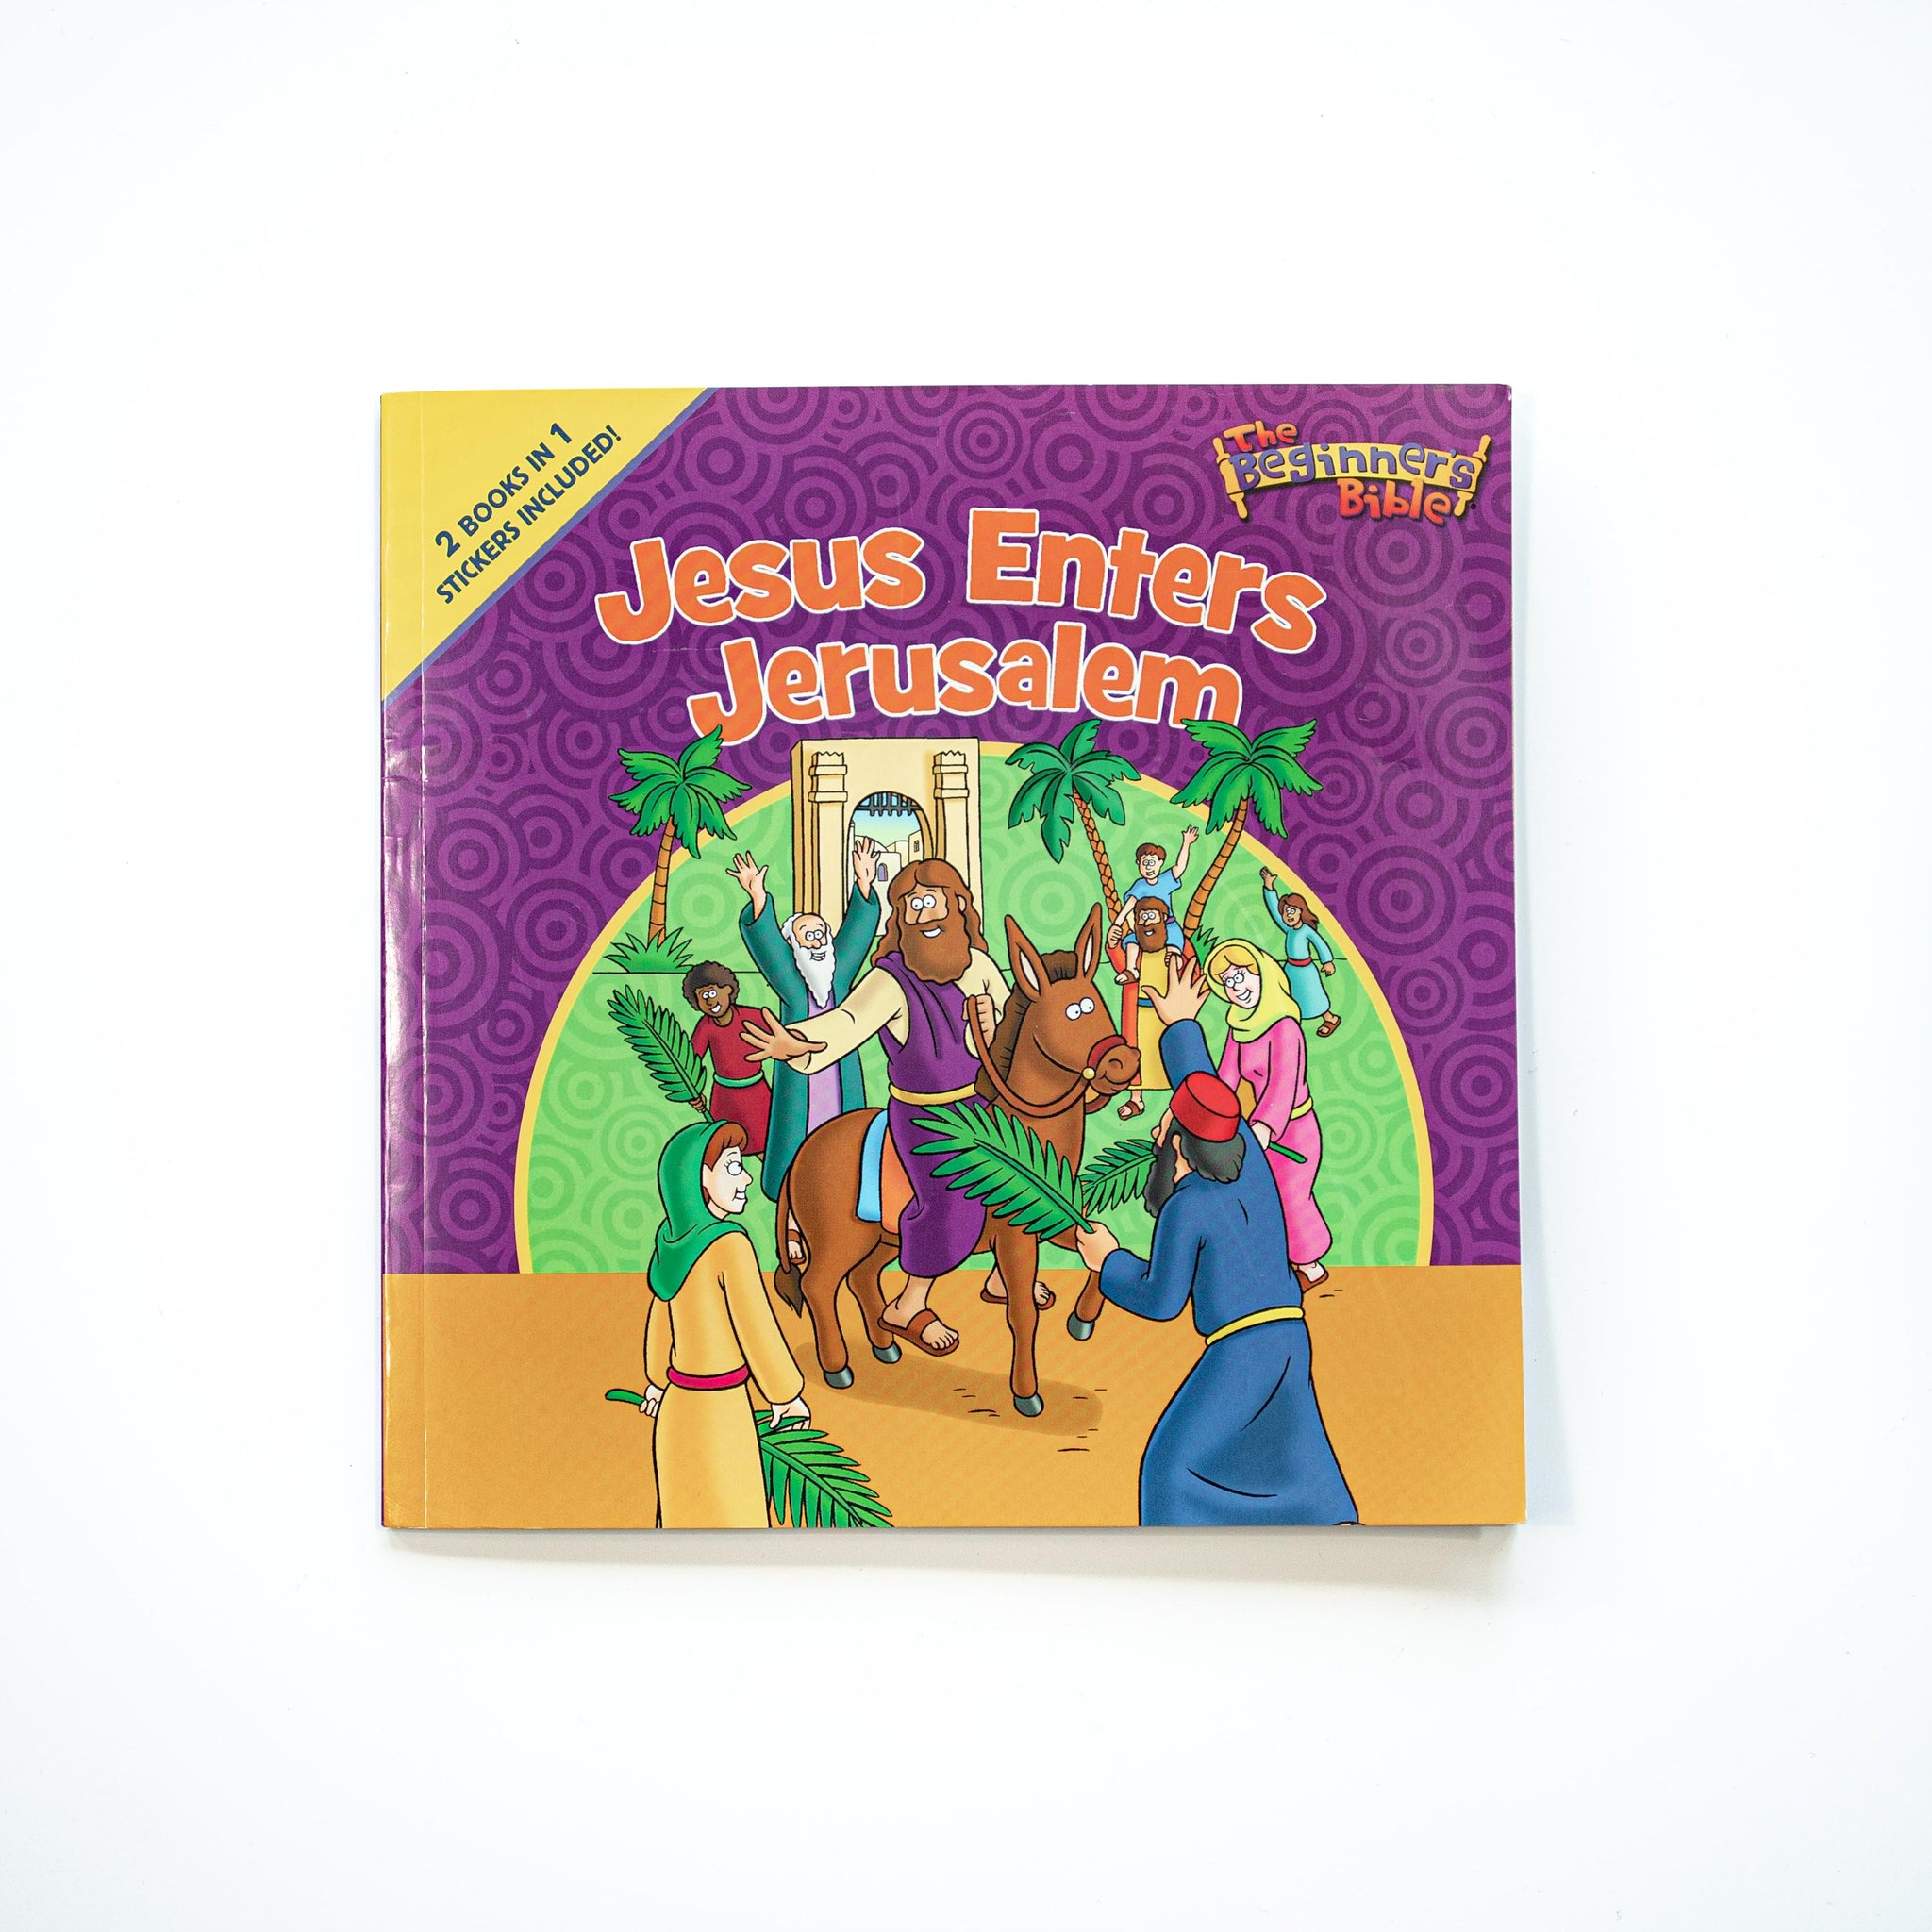 The Beginner's Bible Jesus Enters Jerusalem and He Is Risen: The Beginner's Bible Easter Flip Book